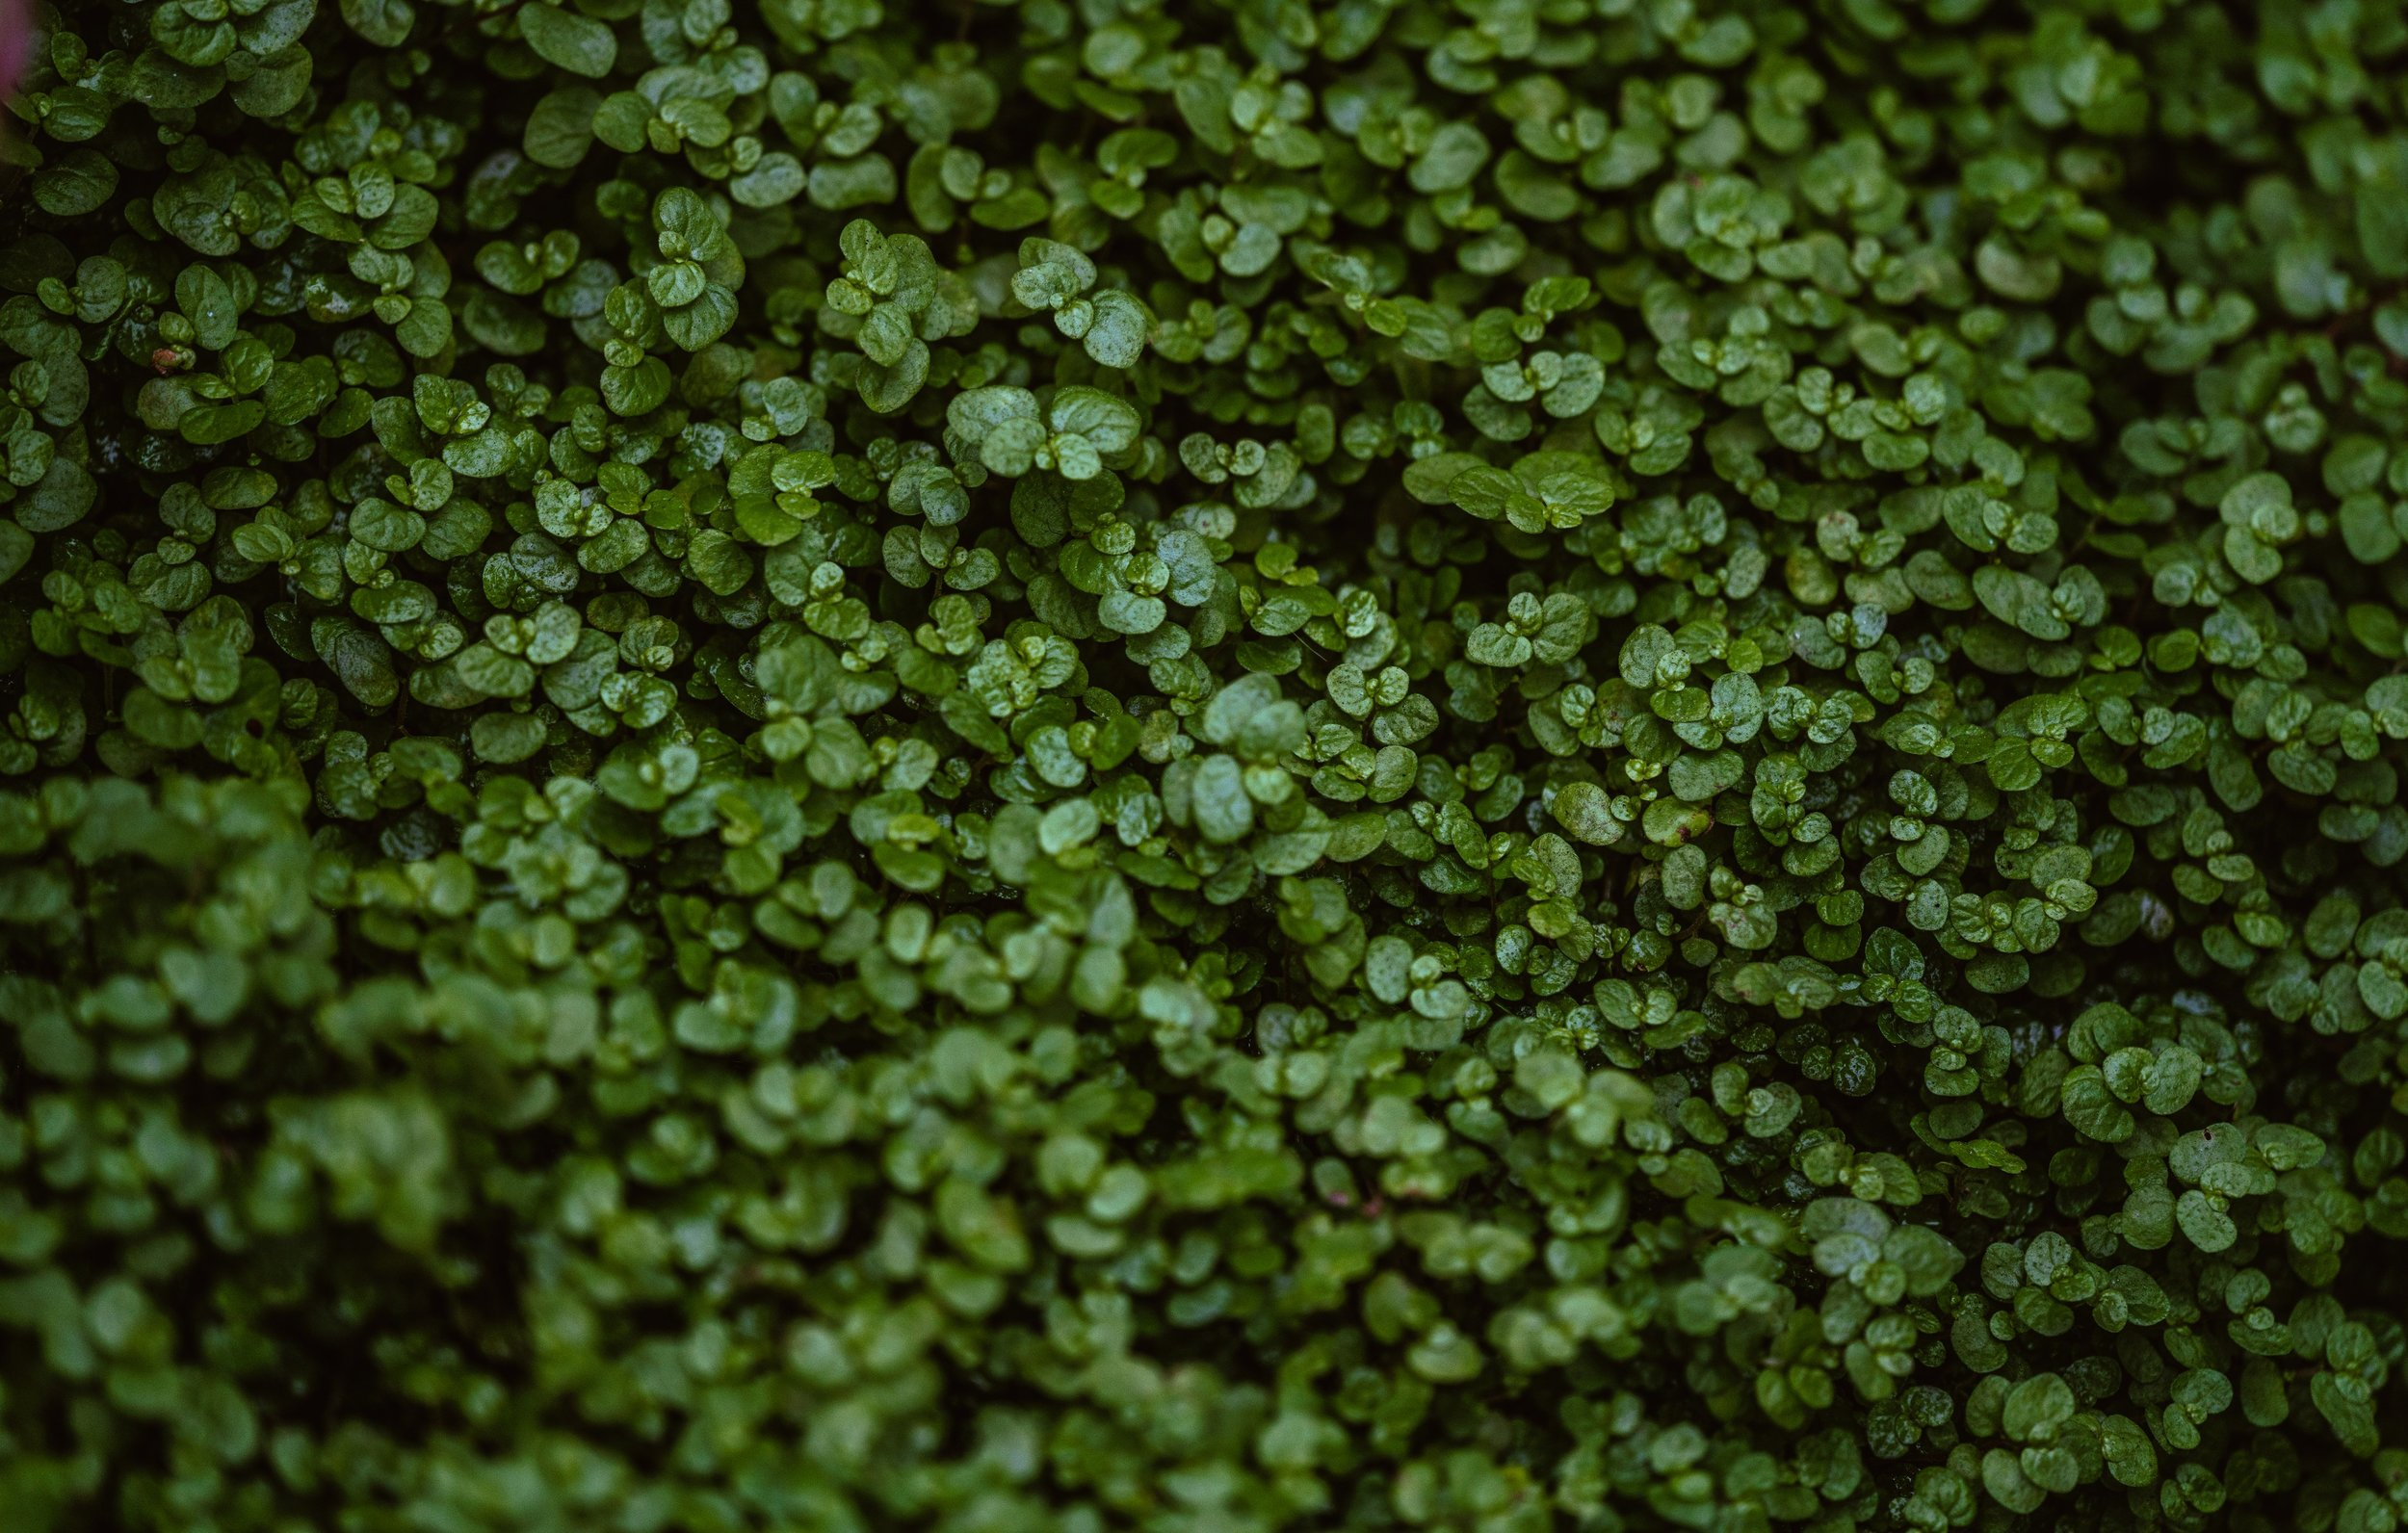 tiny-green-leaves-up-close_4460x4460.jpg